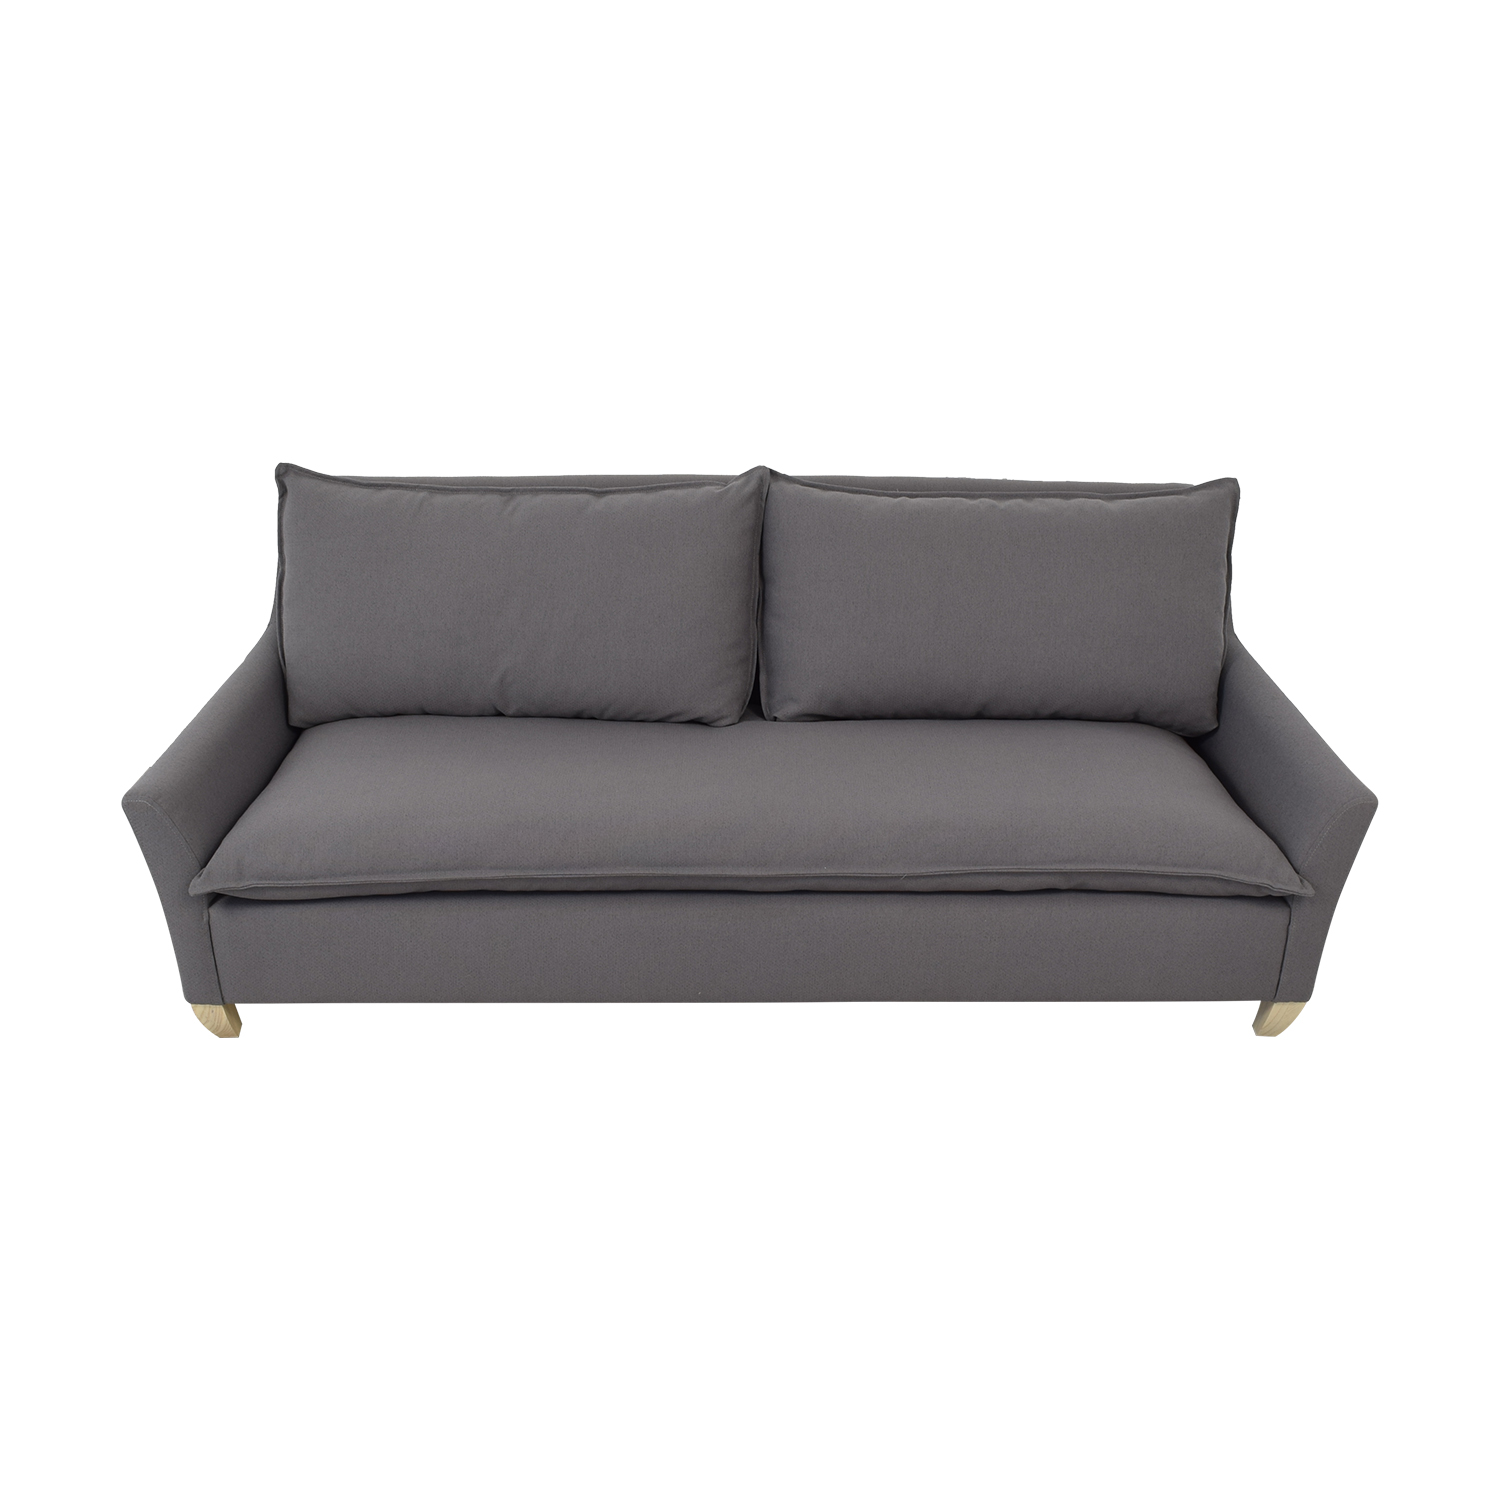 West Elm Bliss Sleeper Sofa West Elm